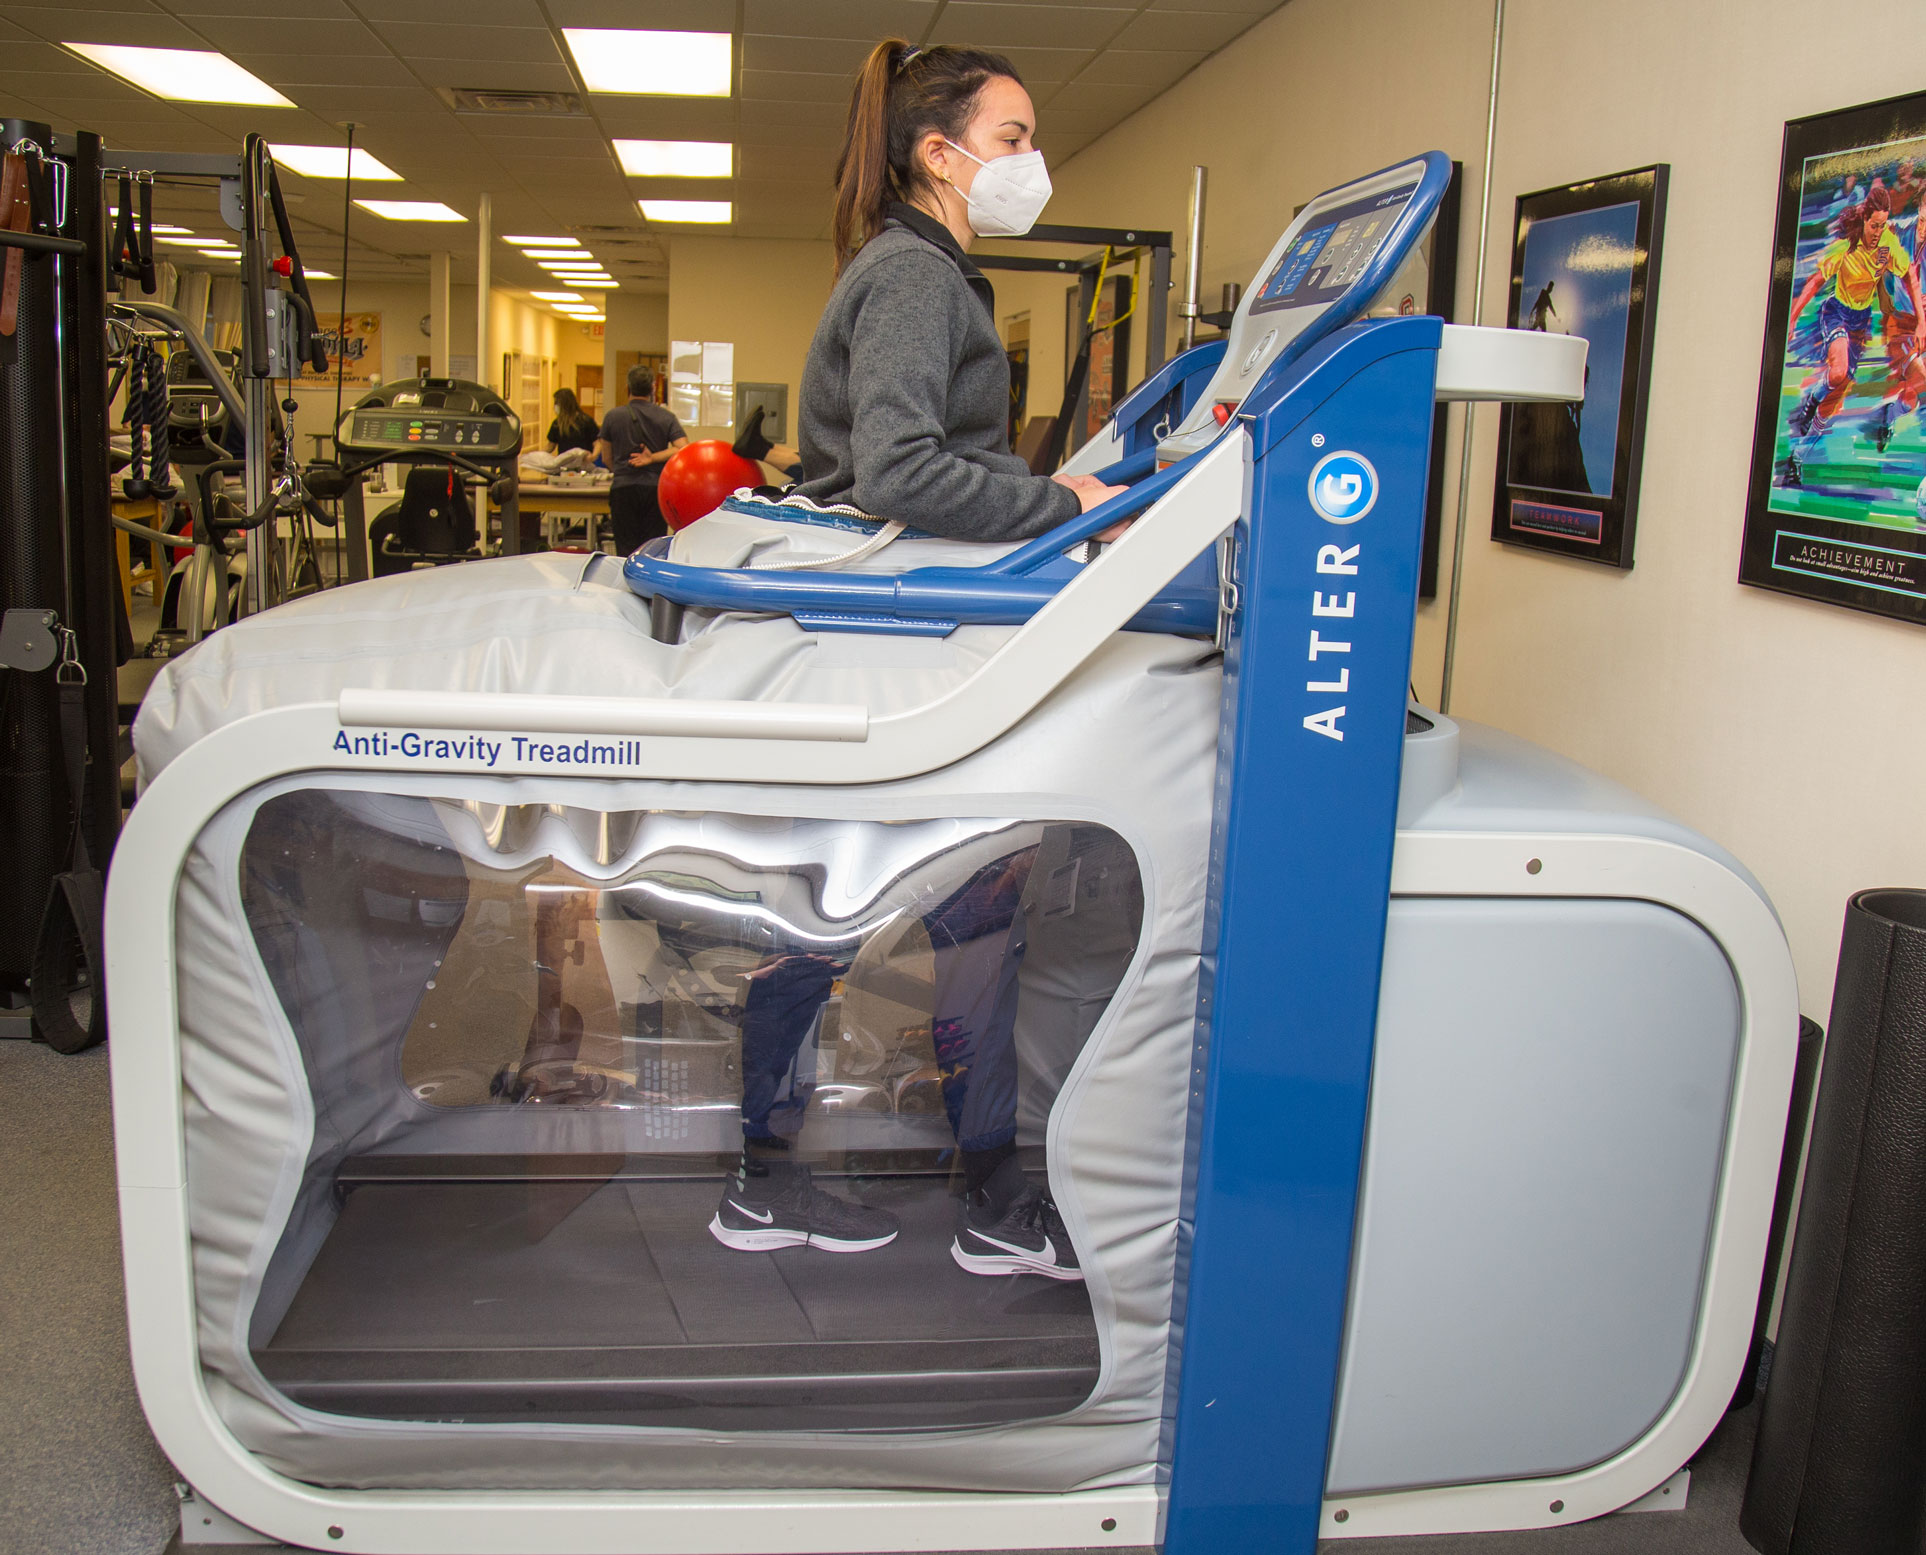 Patient using Alter G treadmill during treatment